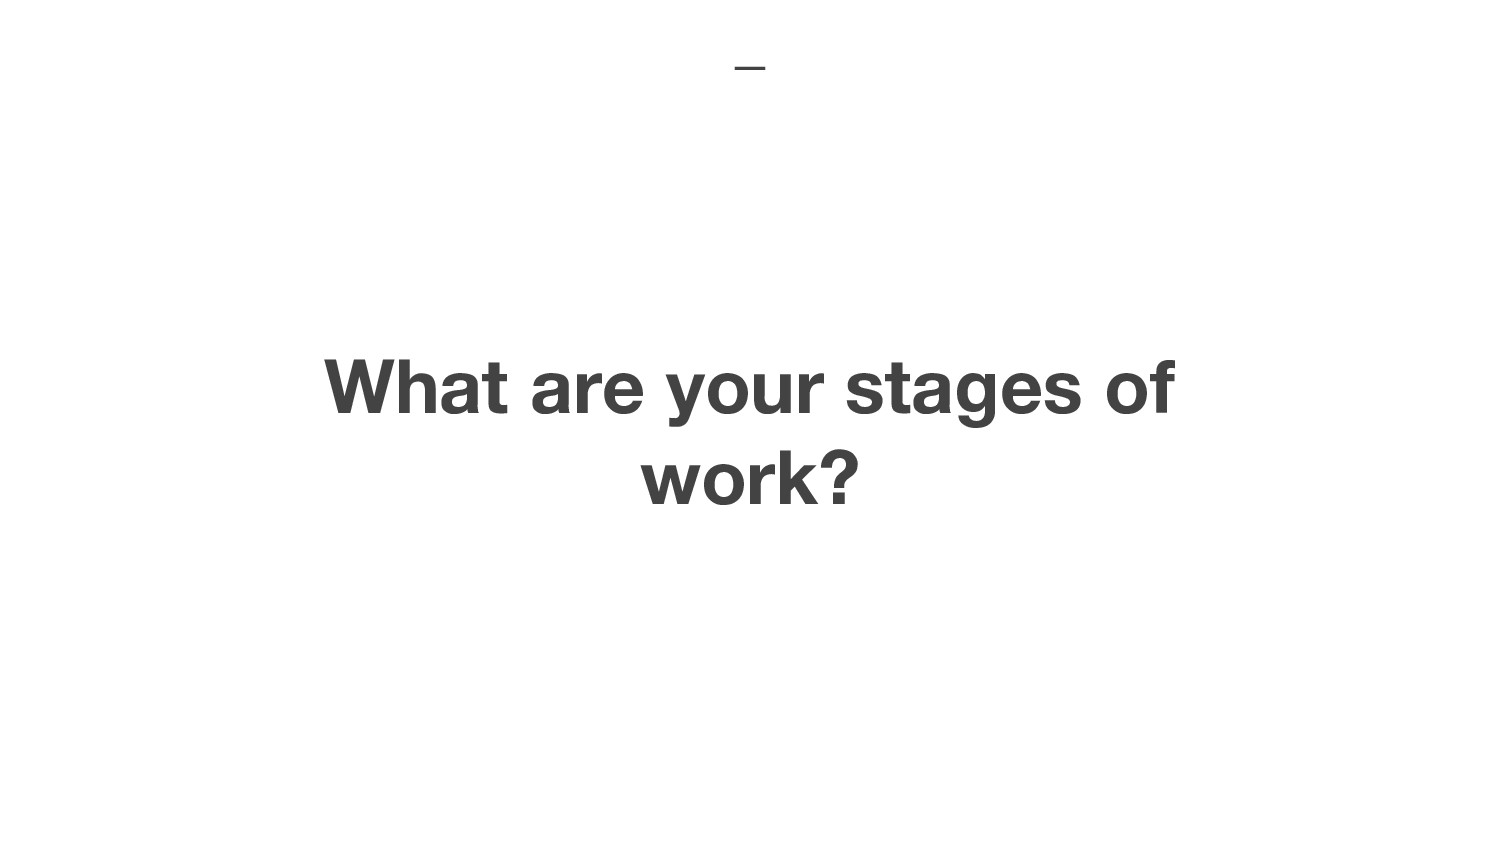 What are your stages of work?